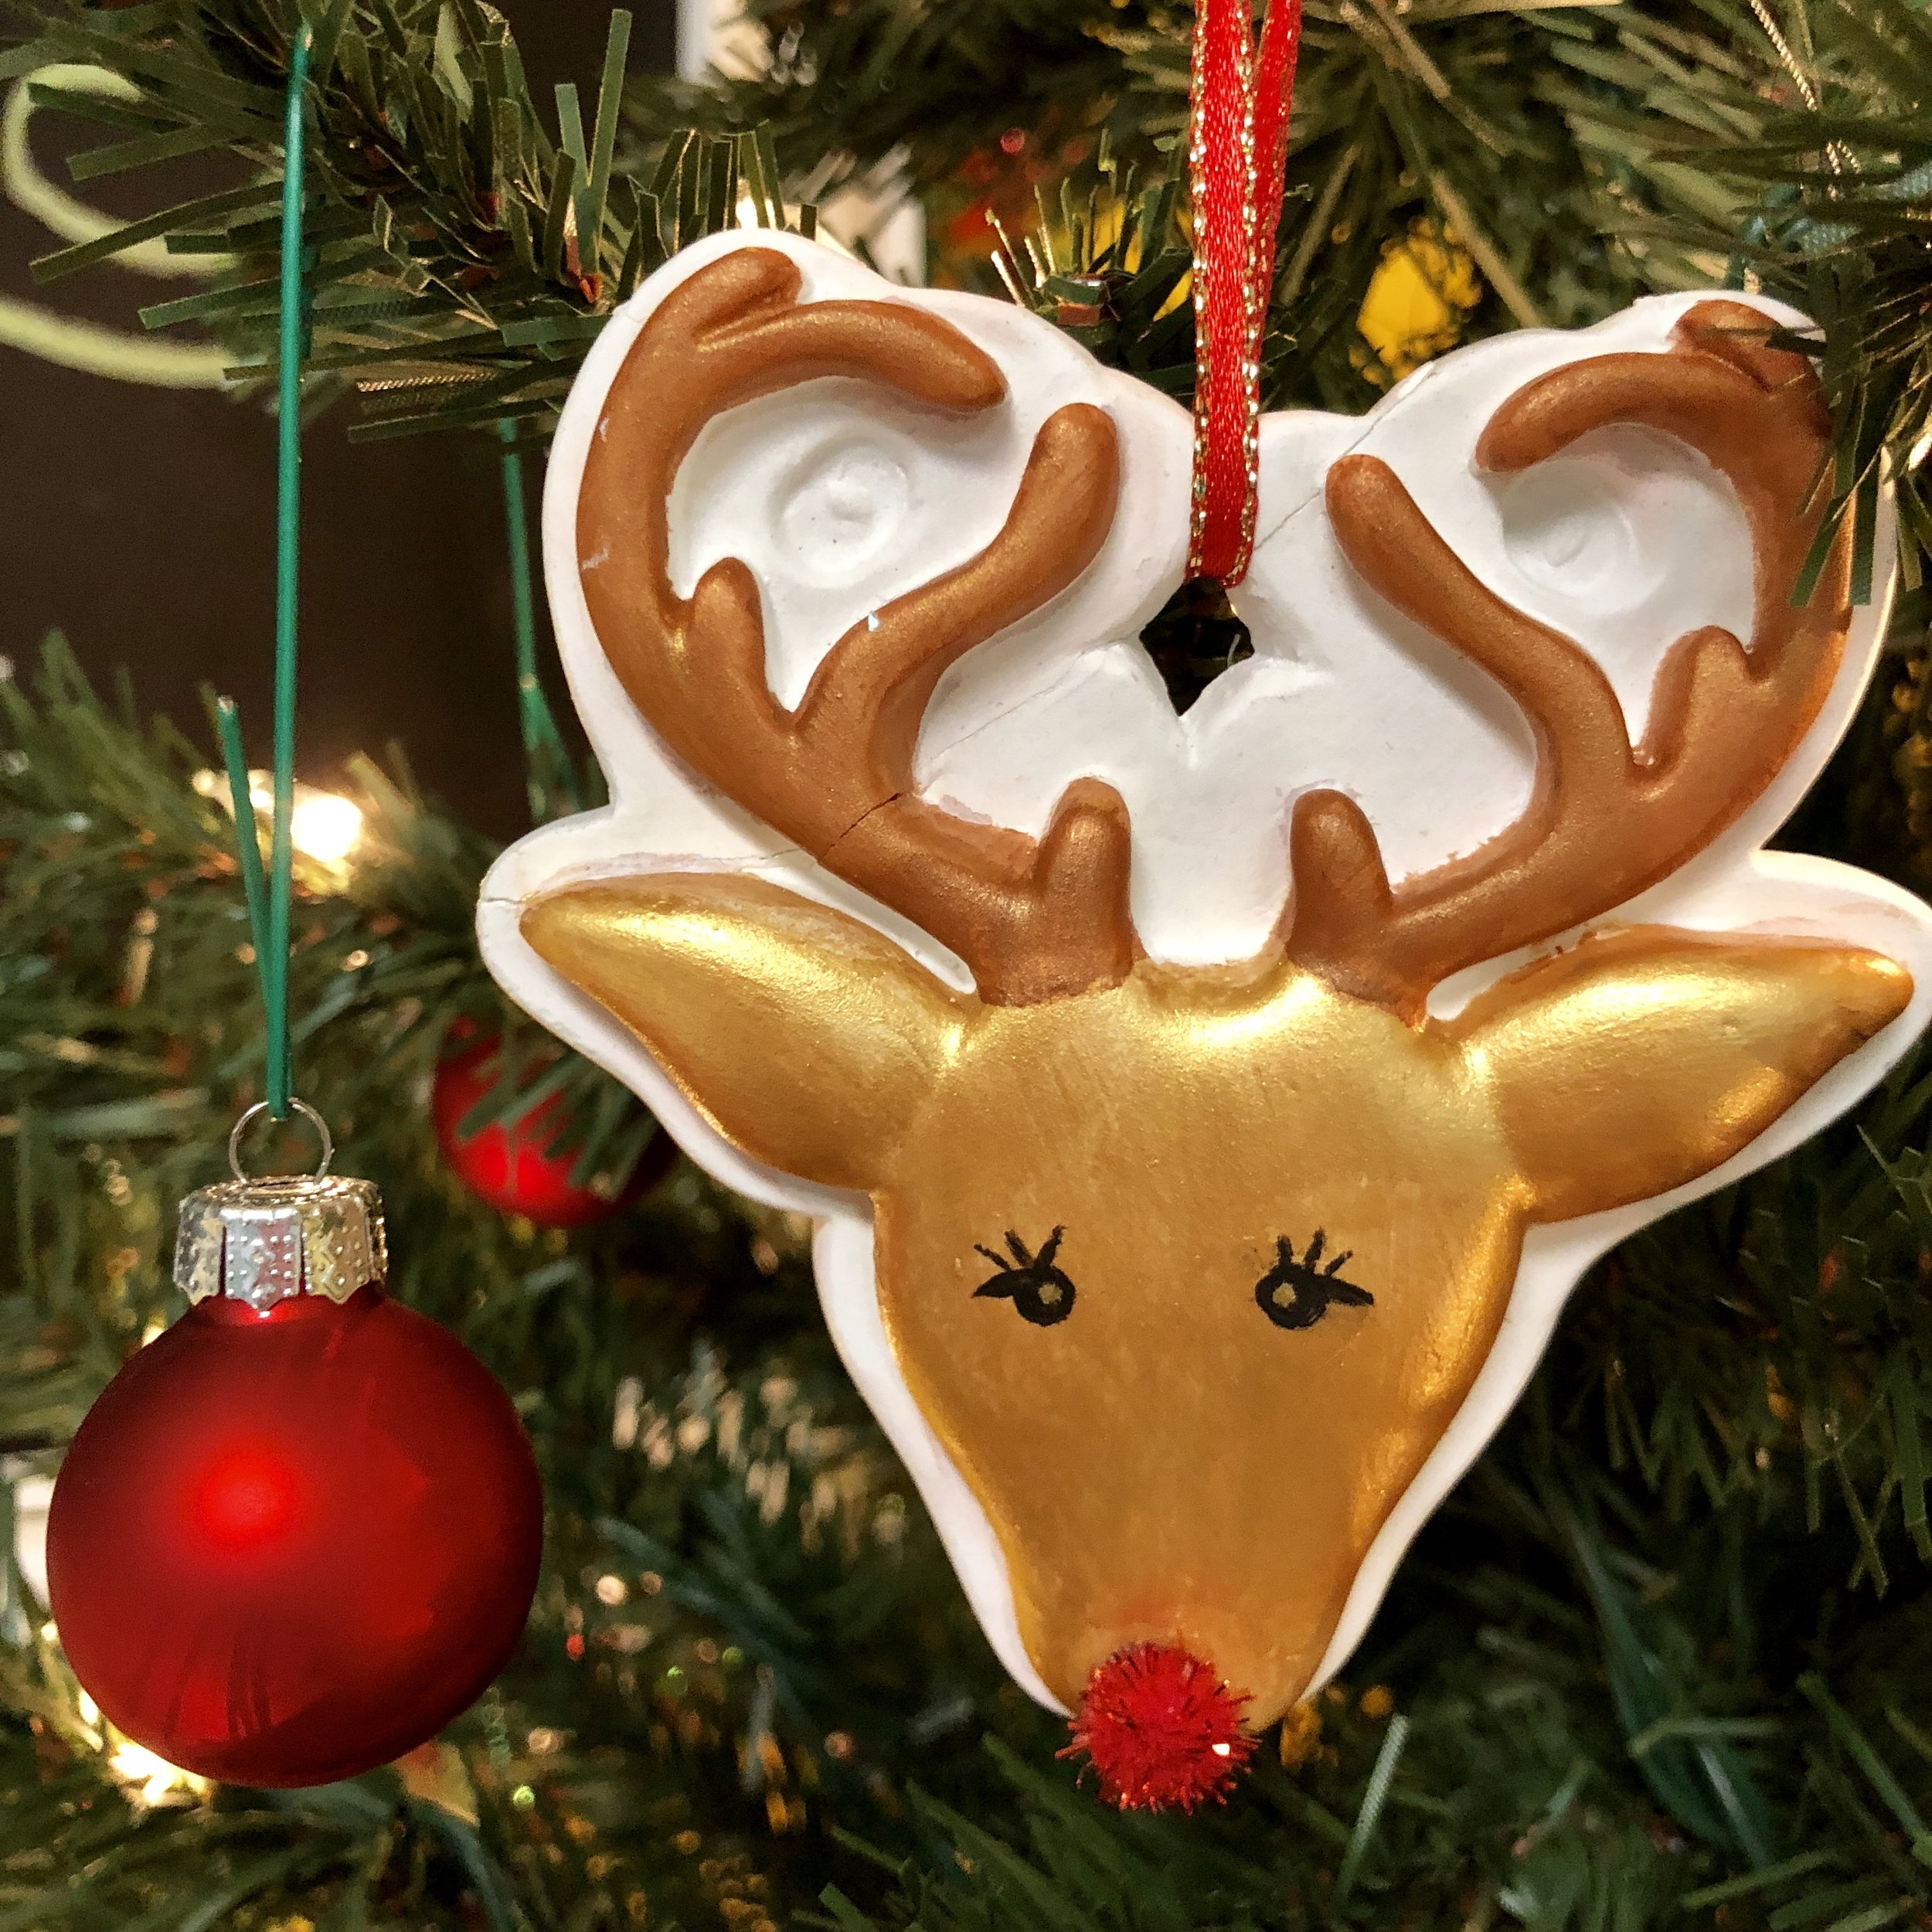 $25 - Ornament Decorating Bar  Paint, glitter, decorate, and create Christmas ornaments. Porcelain, wood, plaster, felt, glass and more!